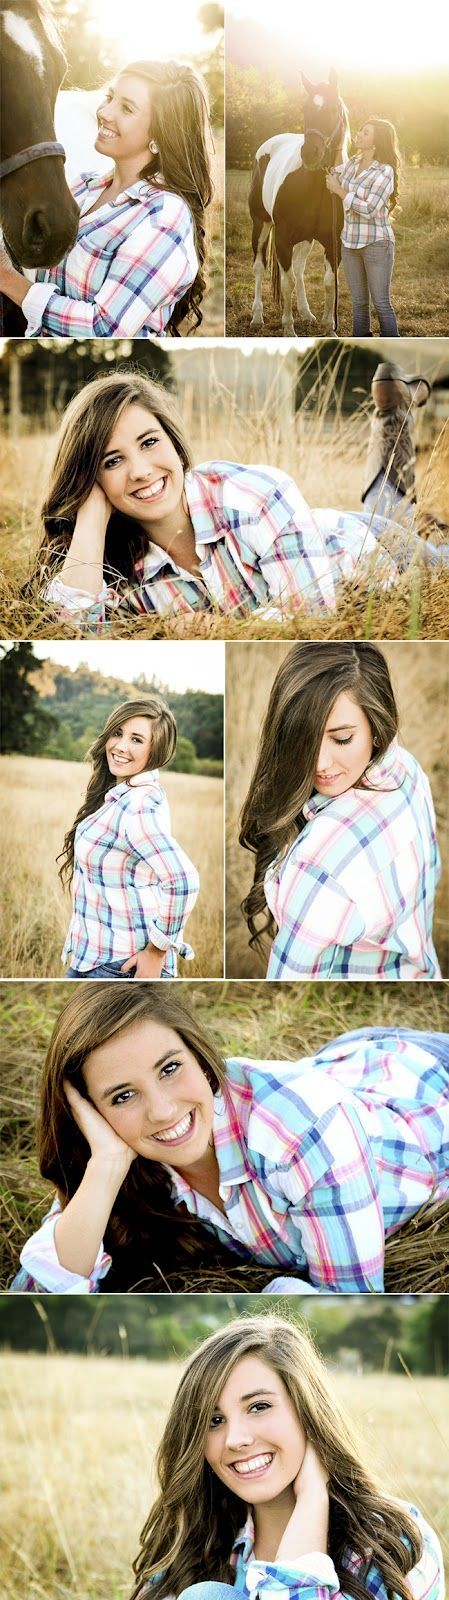 This is cute too. I like the country look. Like with the plaid shirt and blue jeans. Some boots would just be awesome. I think I'd want to wear a white dress too like a white sundress. That'd be cute